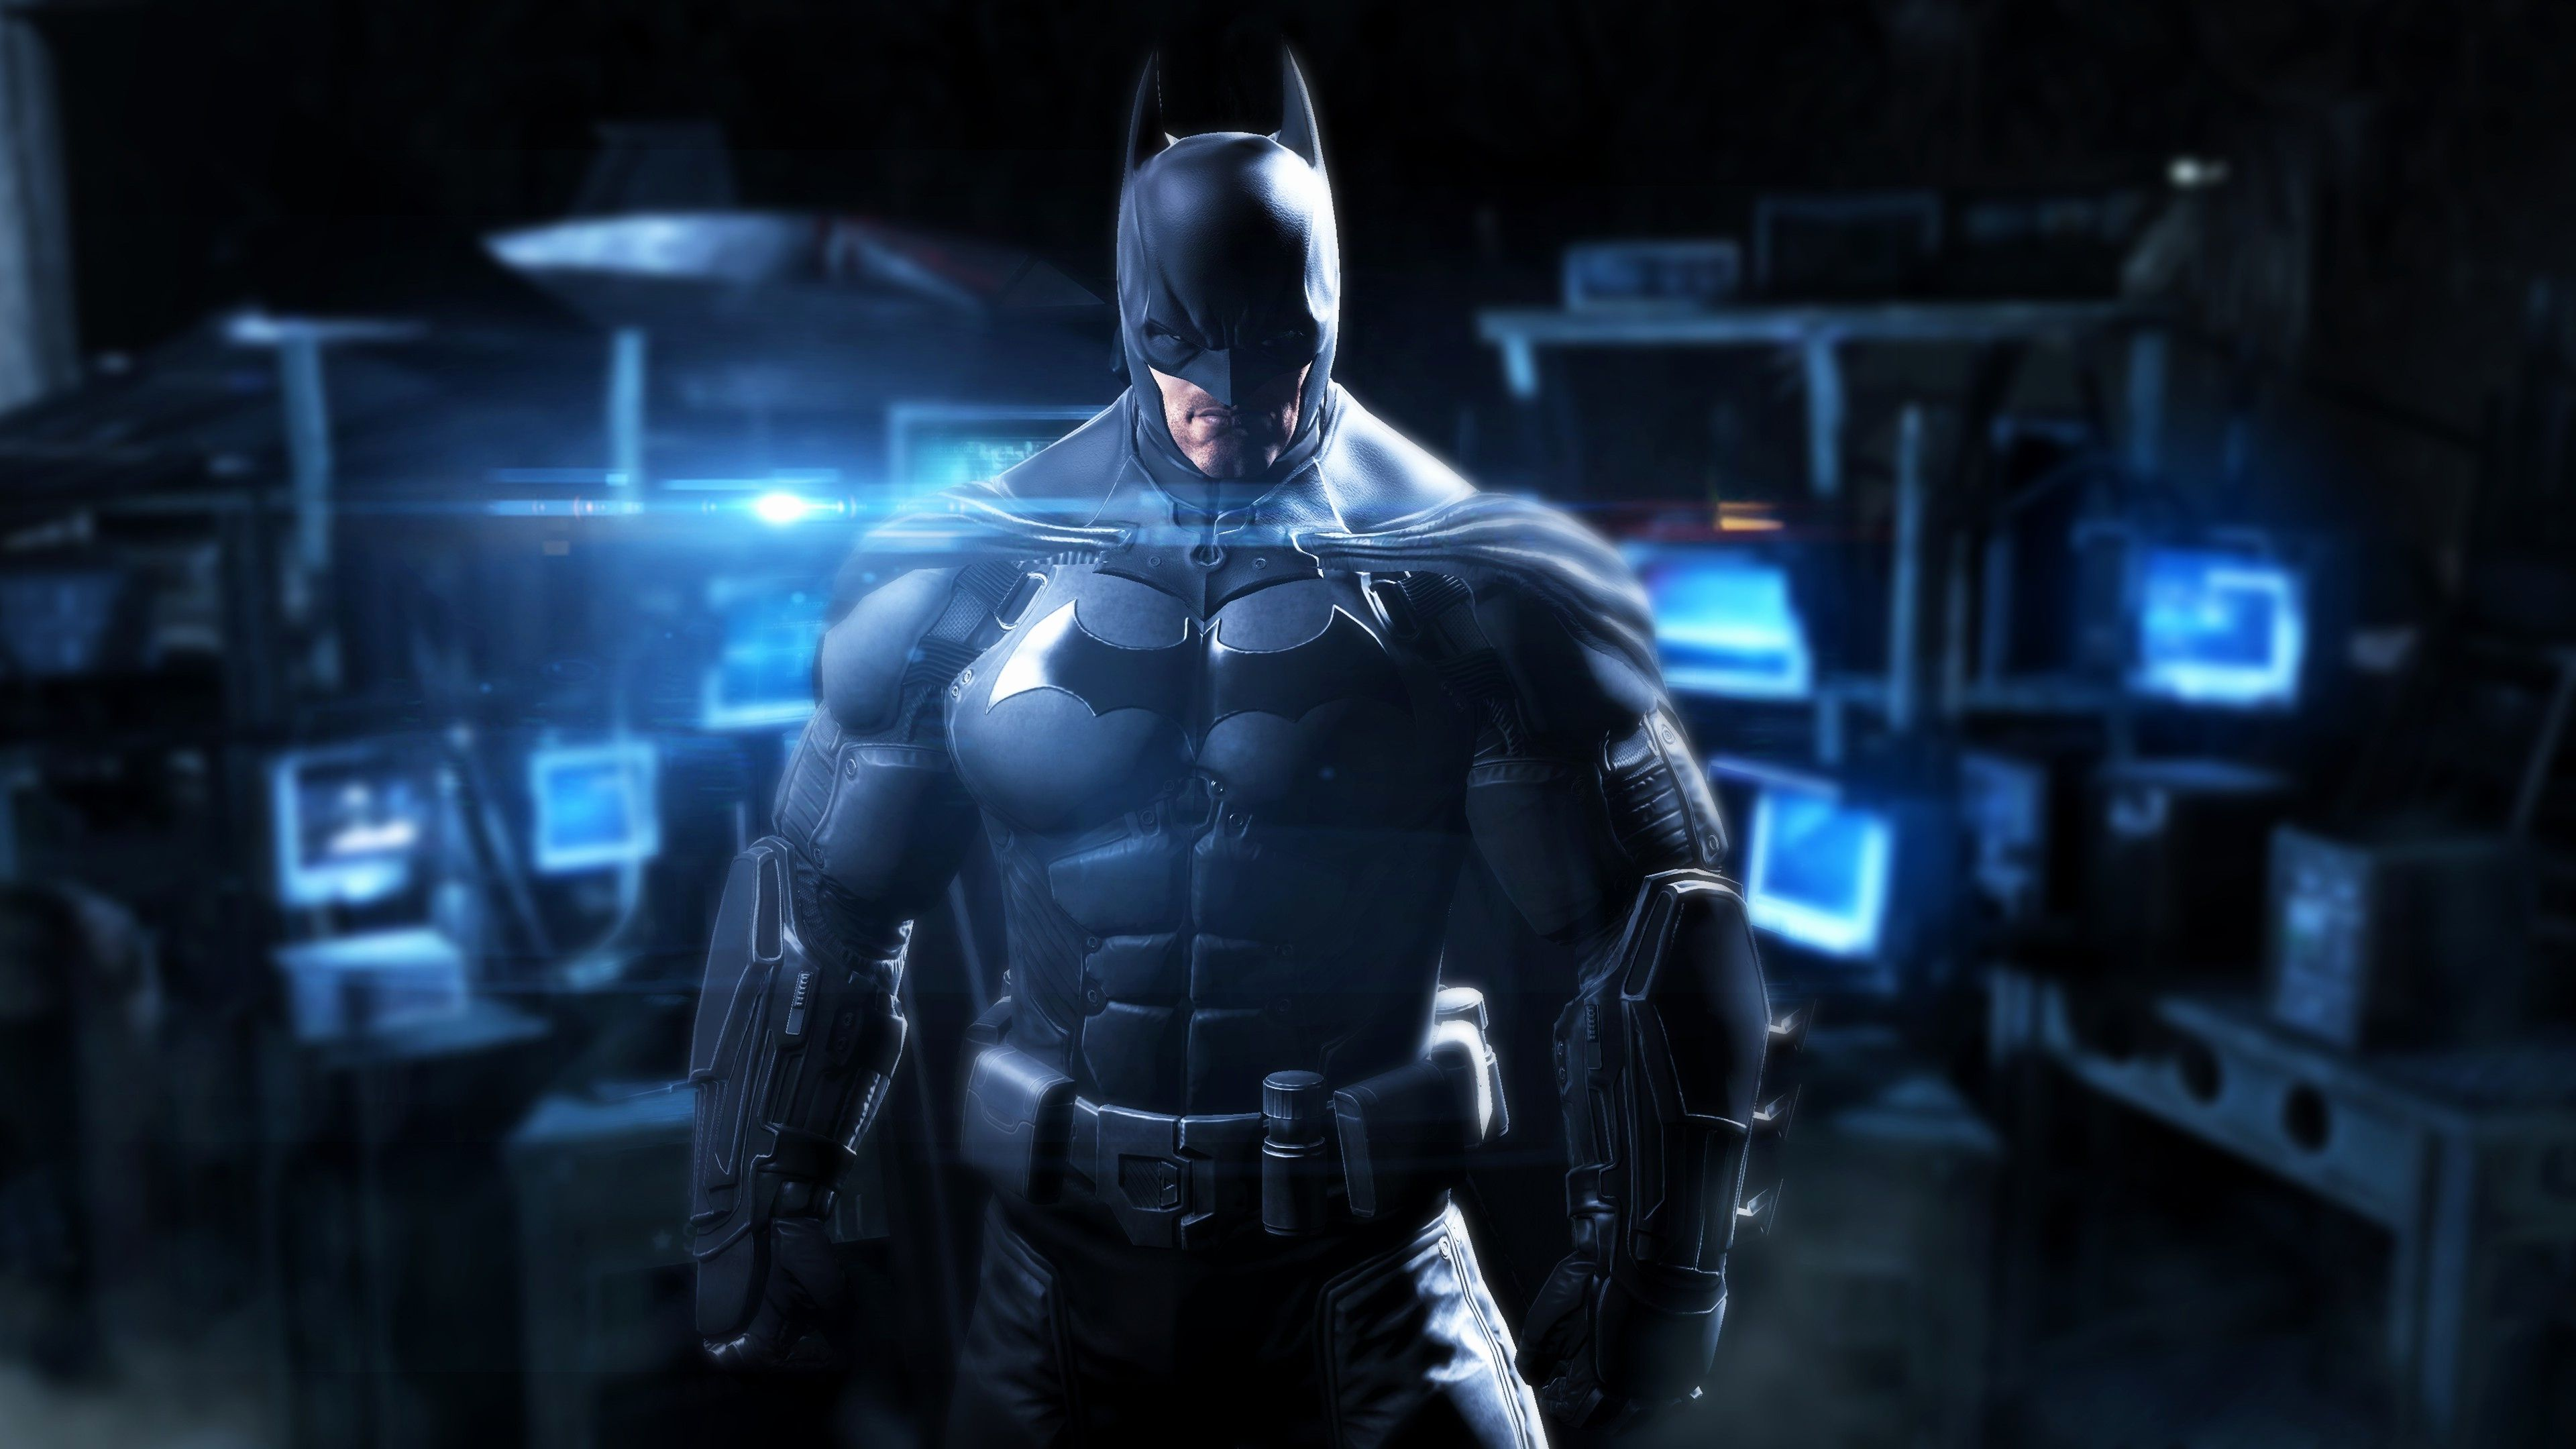 4k Batman New Superheroes Wallpapers Hd Wallpapers Digital